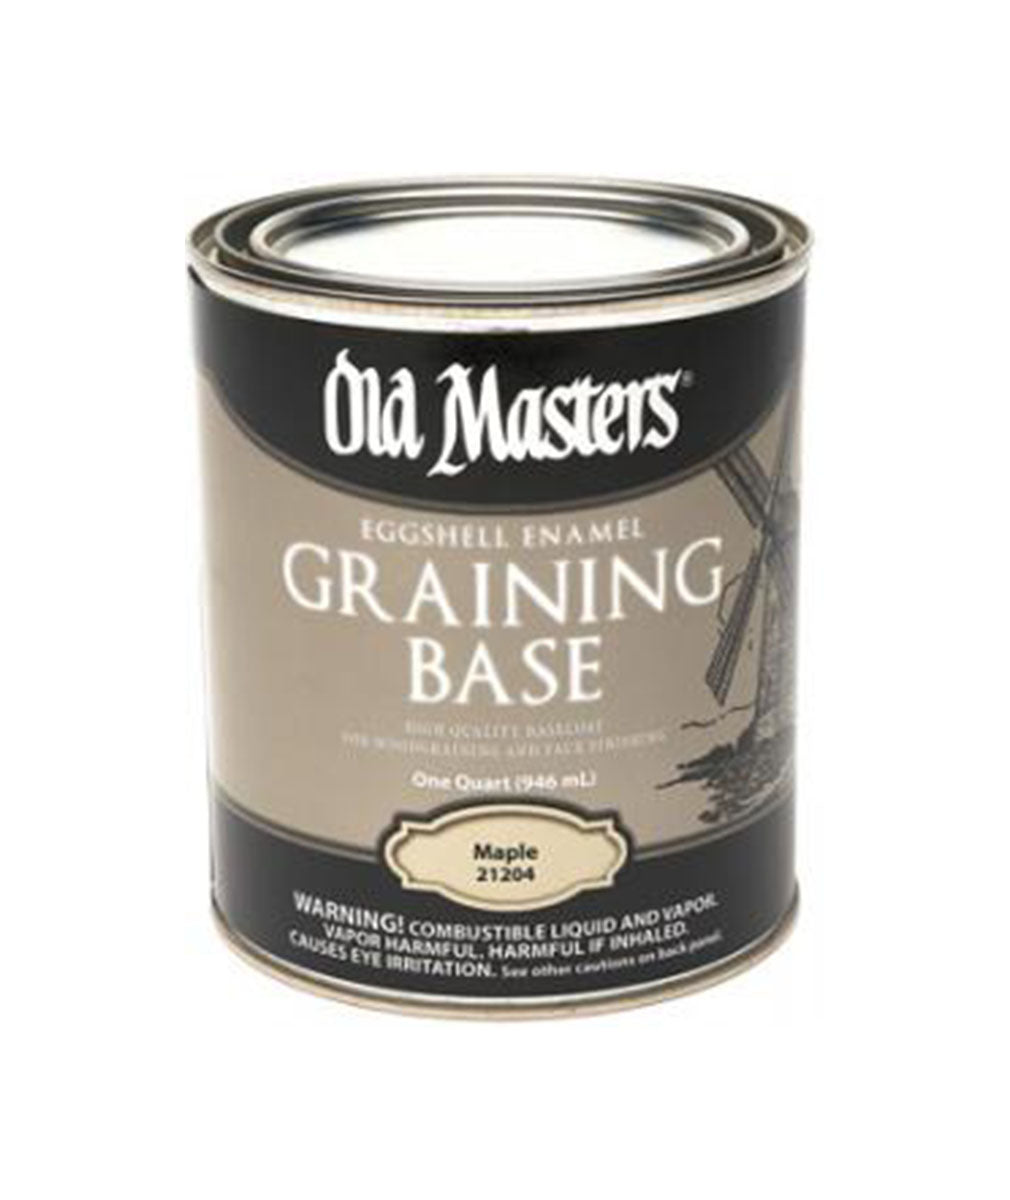 Old Masters Graining Base, available at Clement's Paint in Austin, TX.